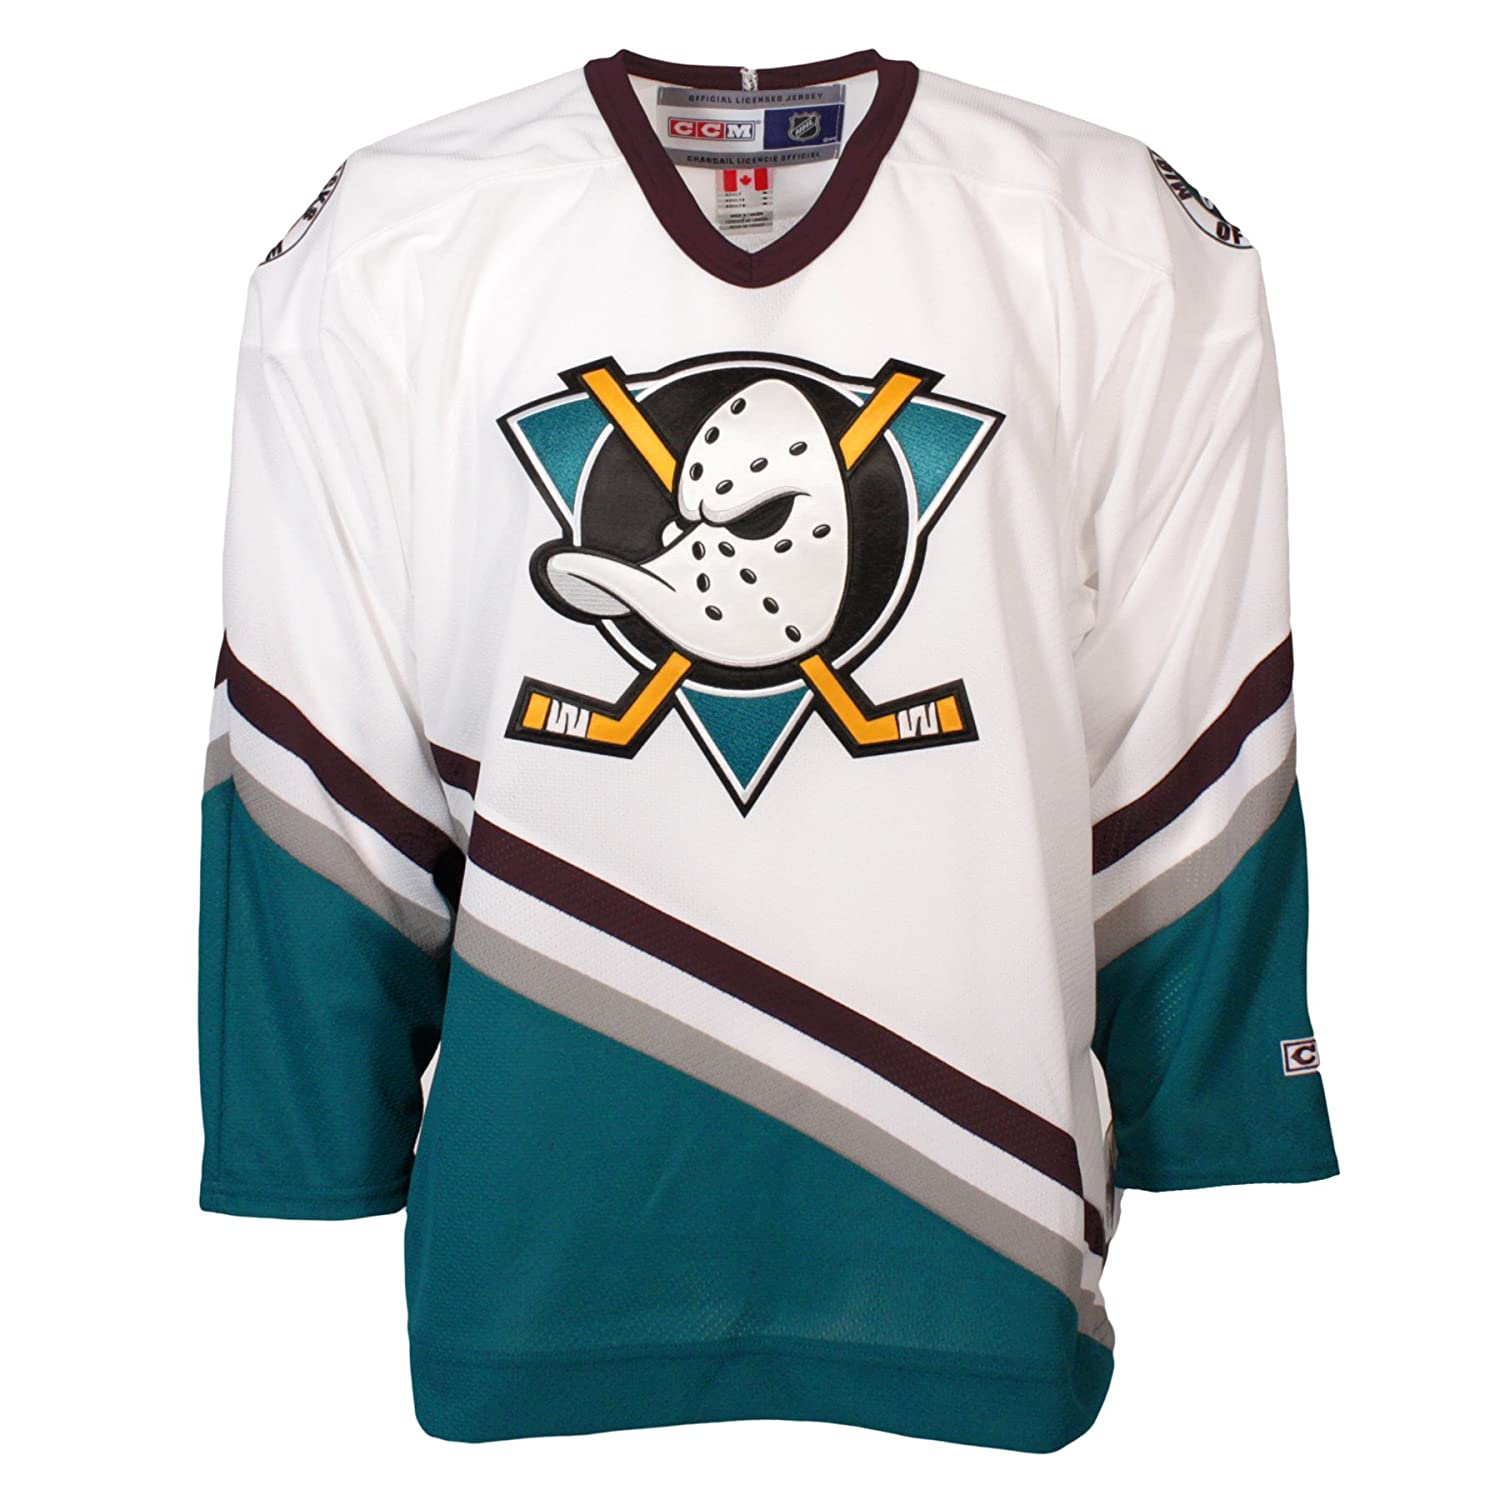 meet 5fea8 63384 Anaheim Mighty Ducks Vintage Replica Jersey 1993-94 (Home ...